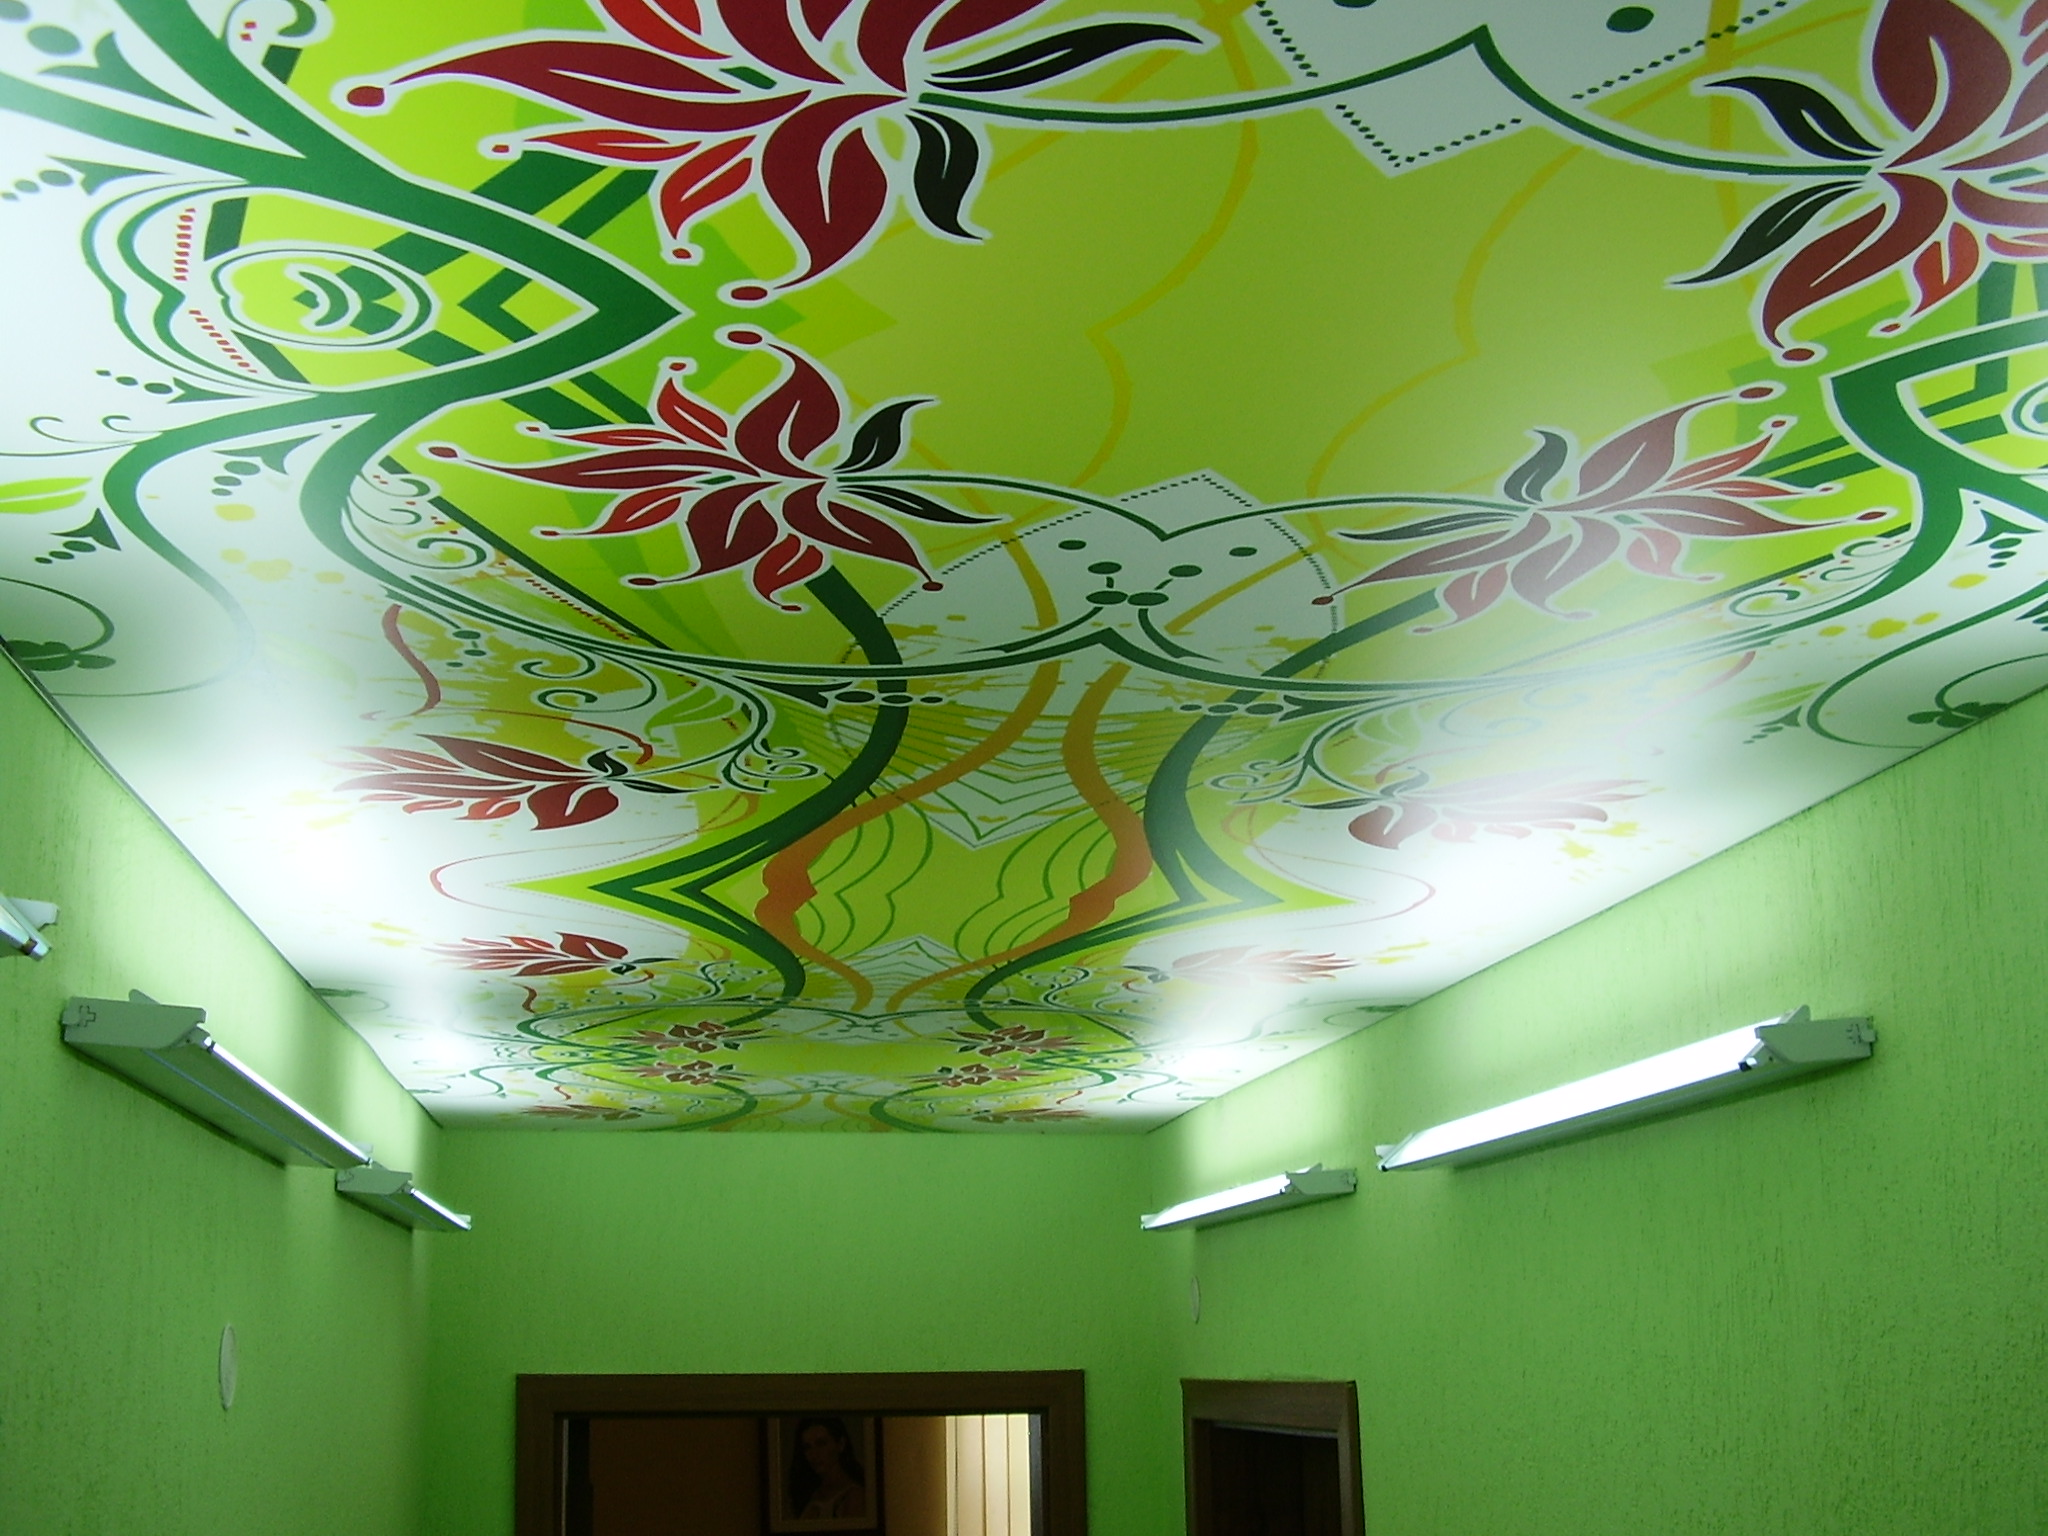 stretched ceilings private buildngs - 65